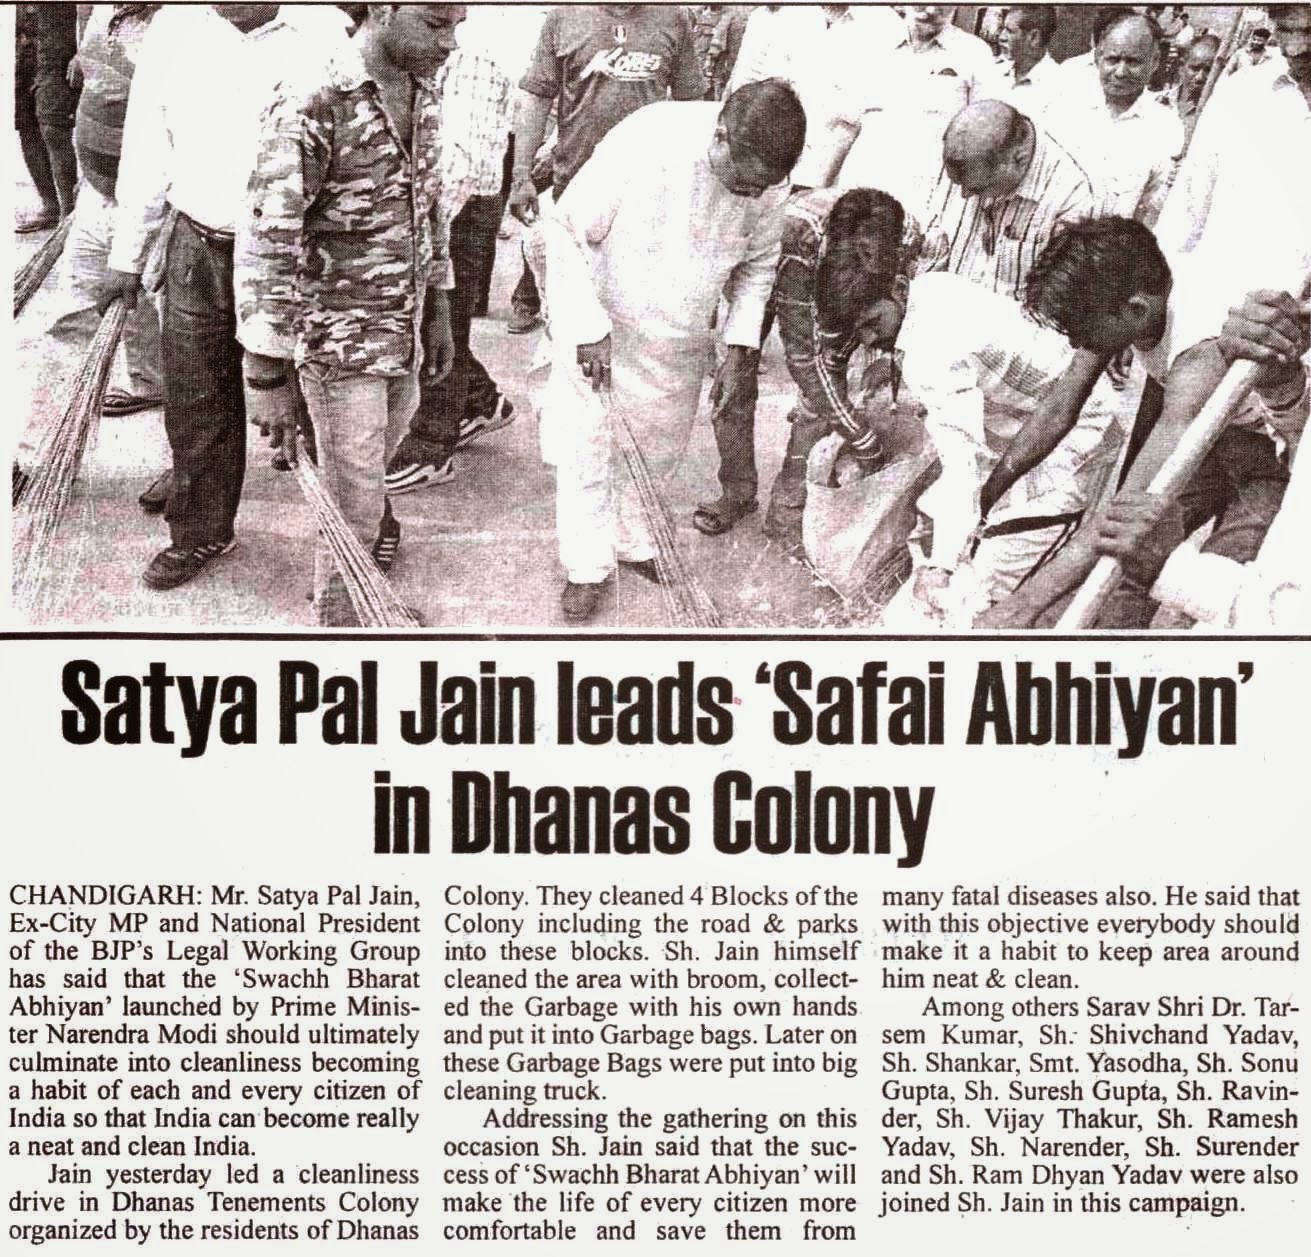 Satya Pal Jain leads 'Safai Abhiyan' in Dhanas Colony